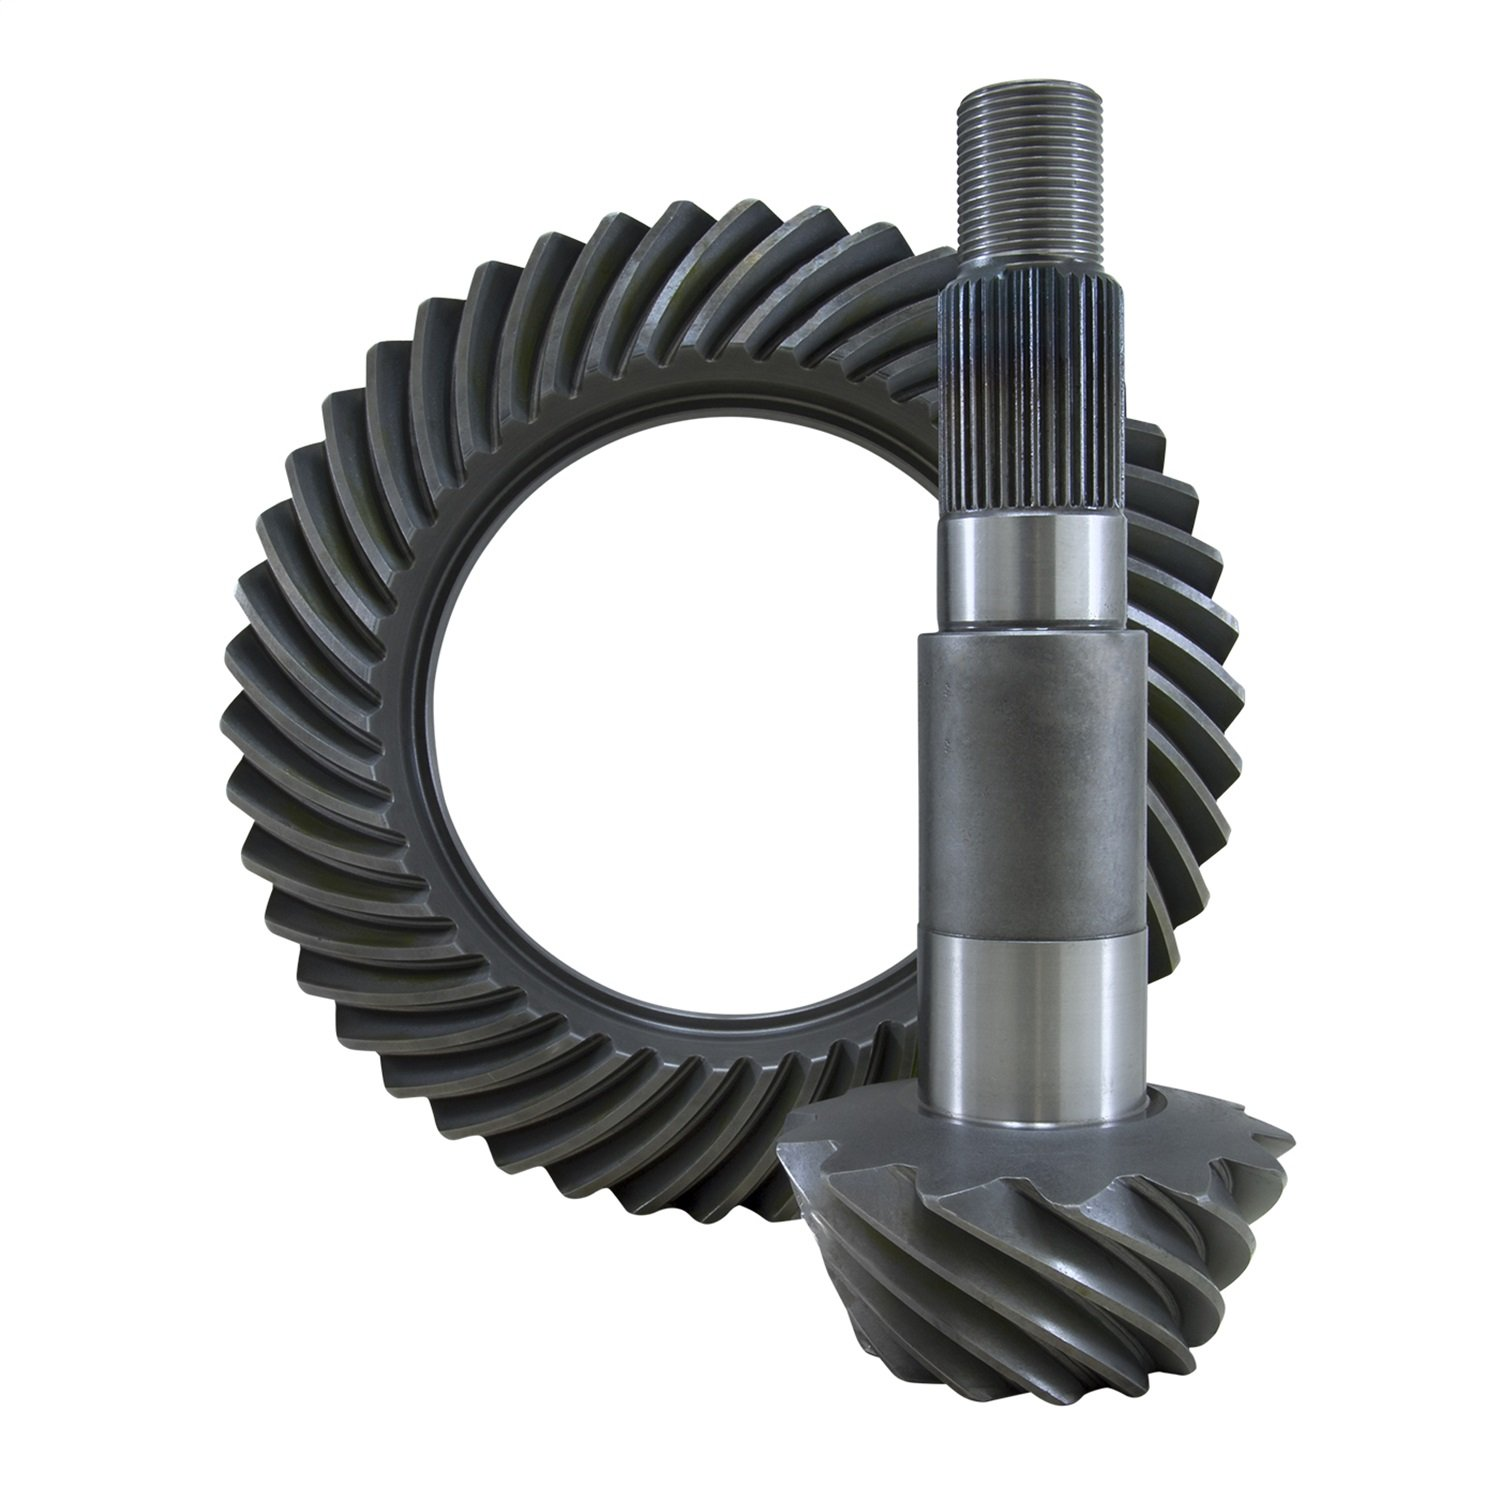 ZG D60-488 Replacement Ring /& Pinion Gear Set for Dana 60 Differential USA Standard Gear